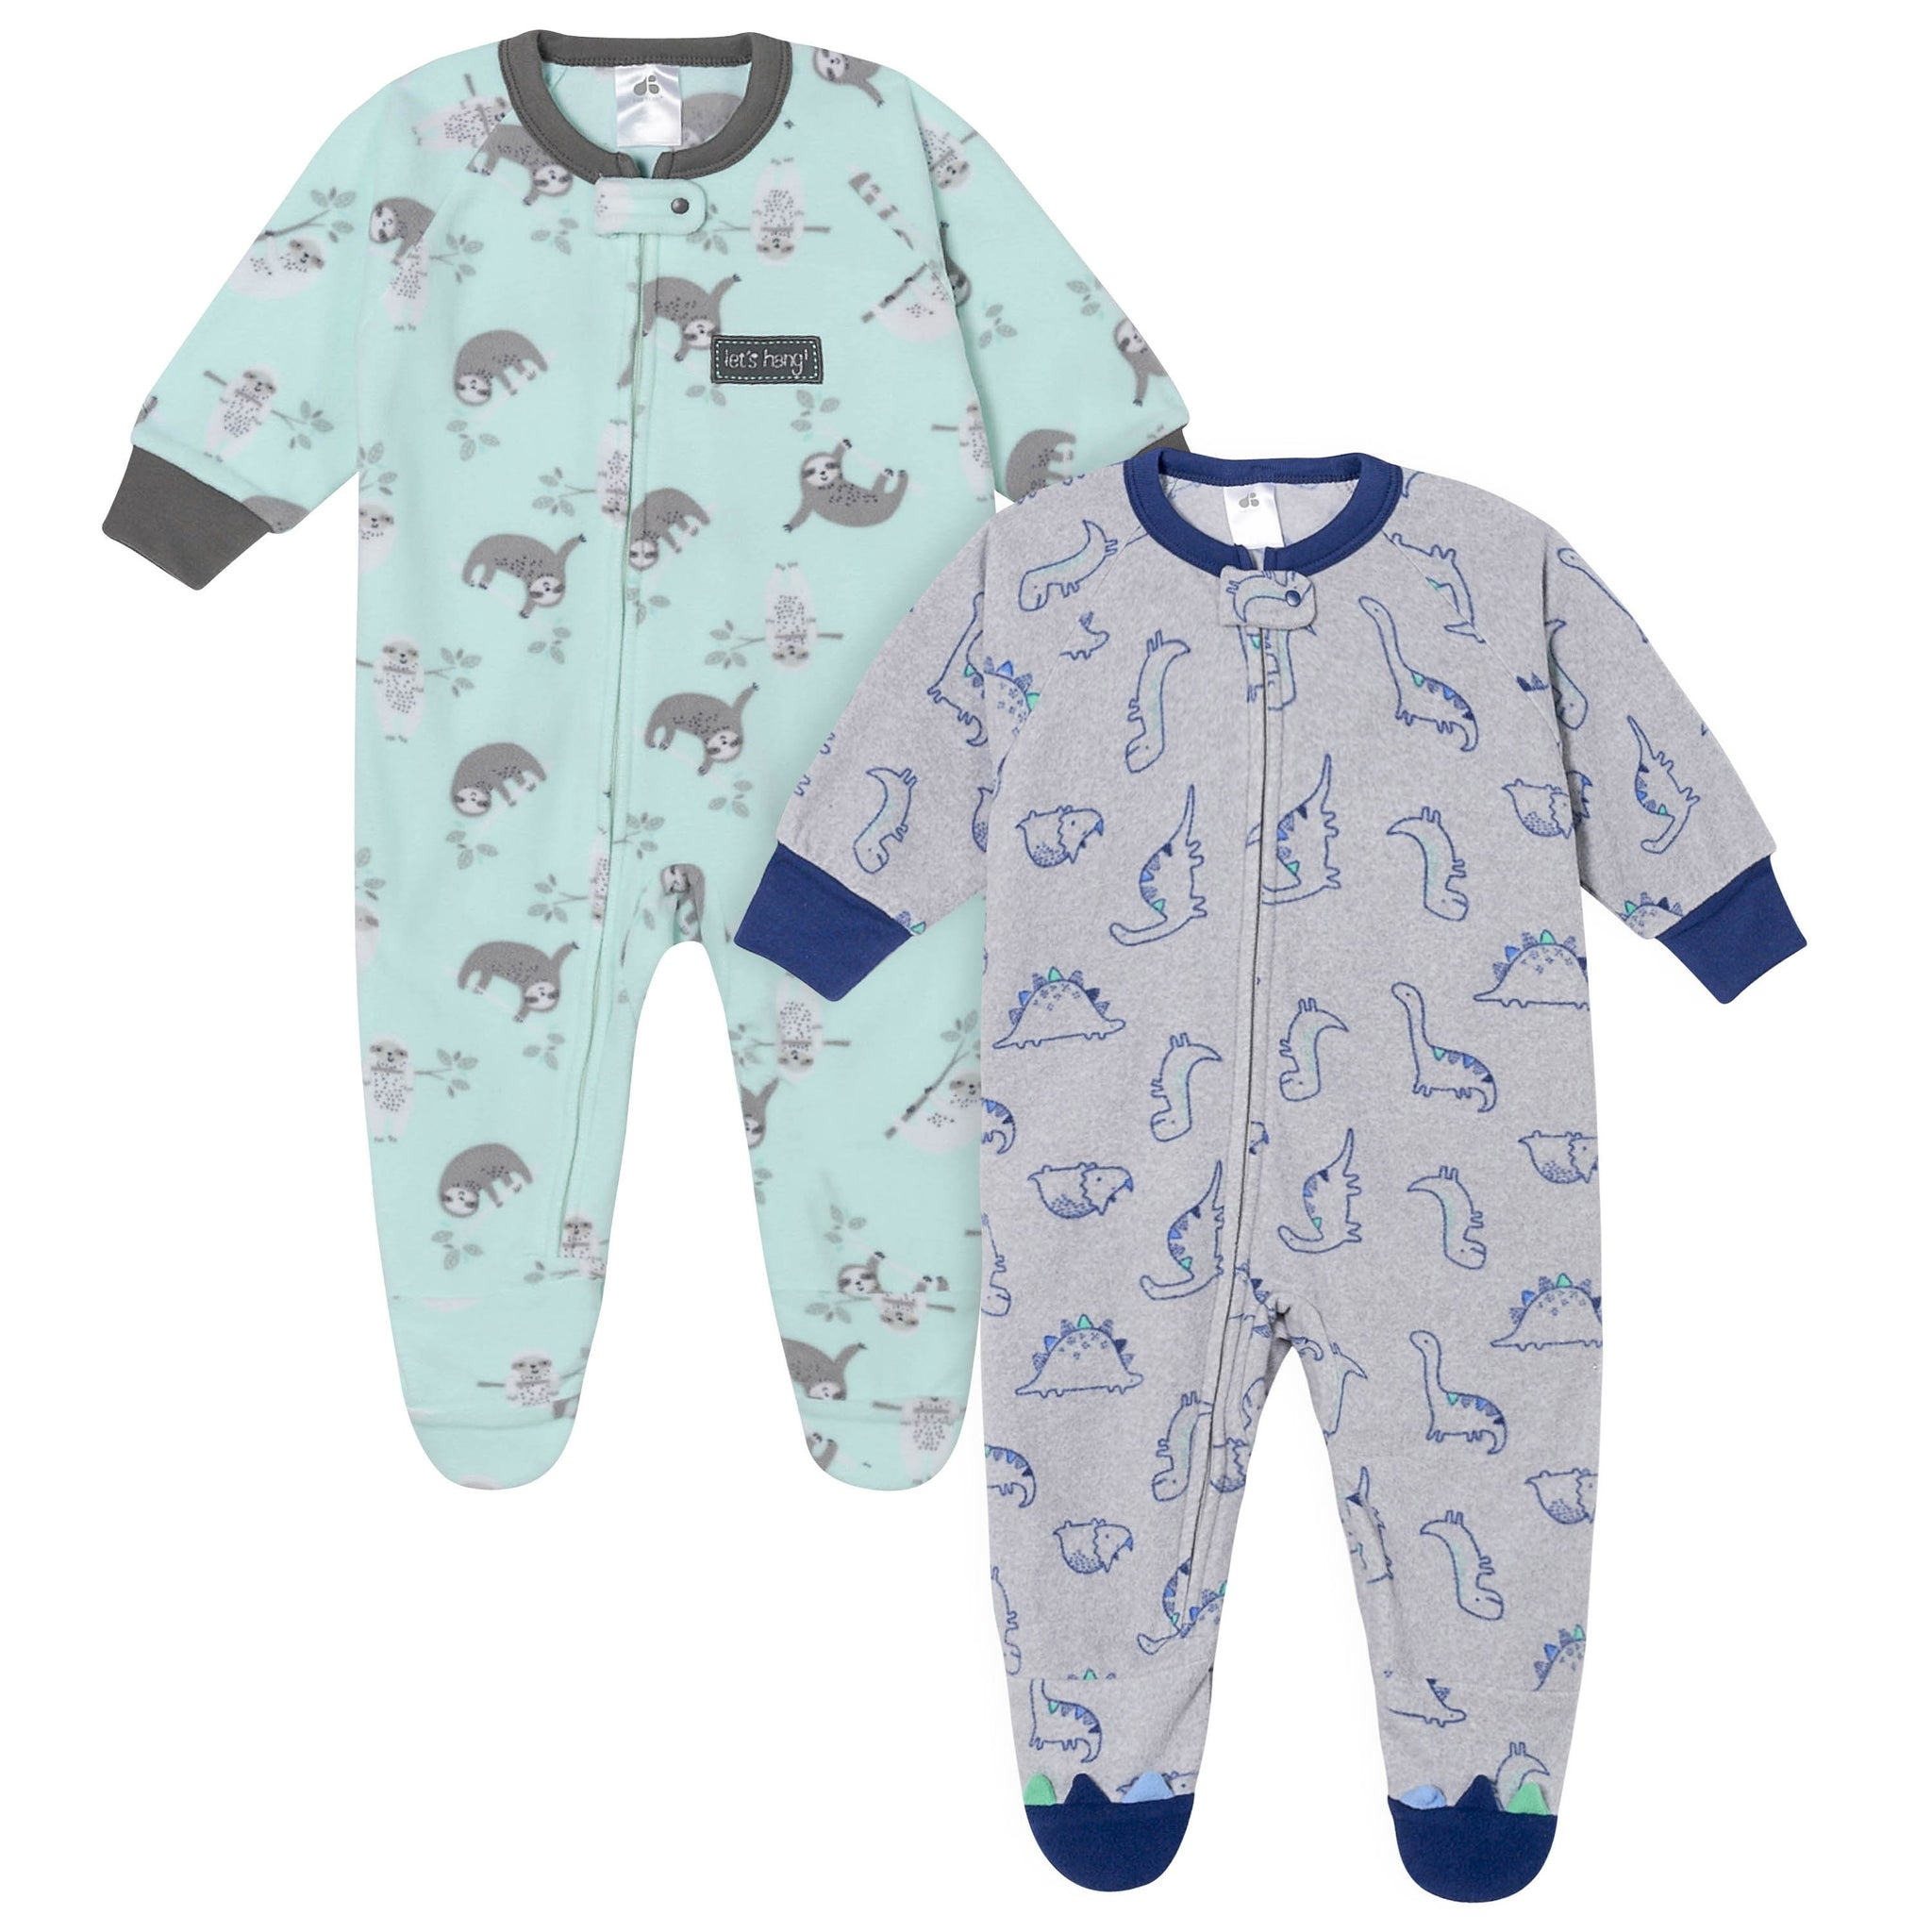 Baby Boys' 2-Pack Dinosaurs and Sloths Blanket Sleepers-Gerber Childrenswear